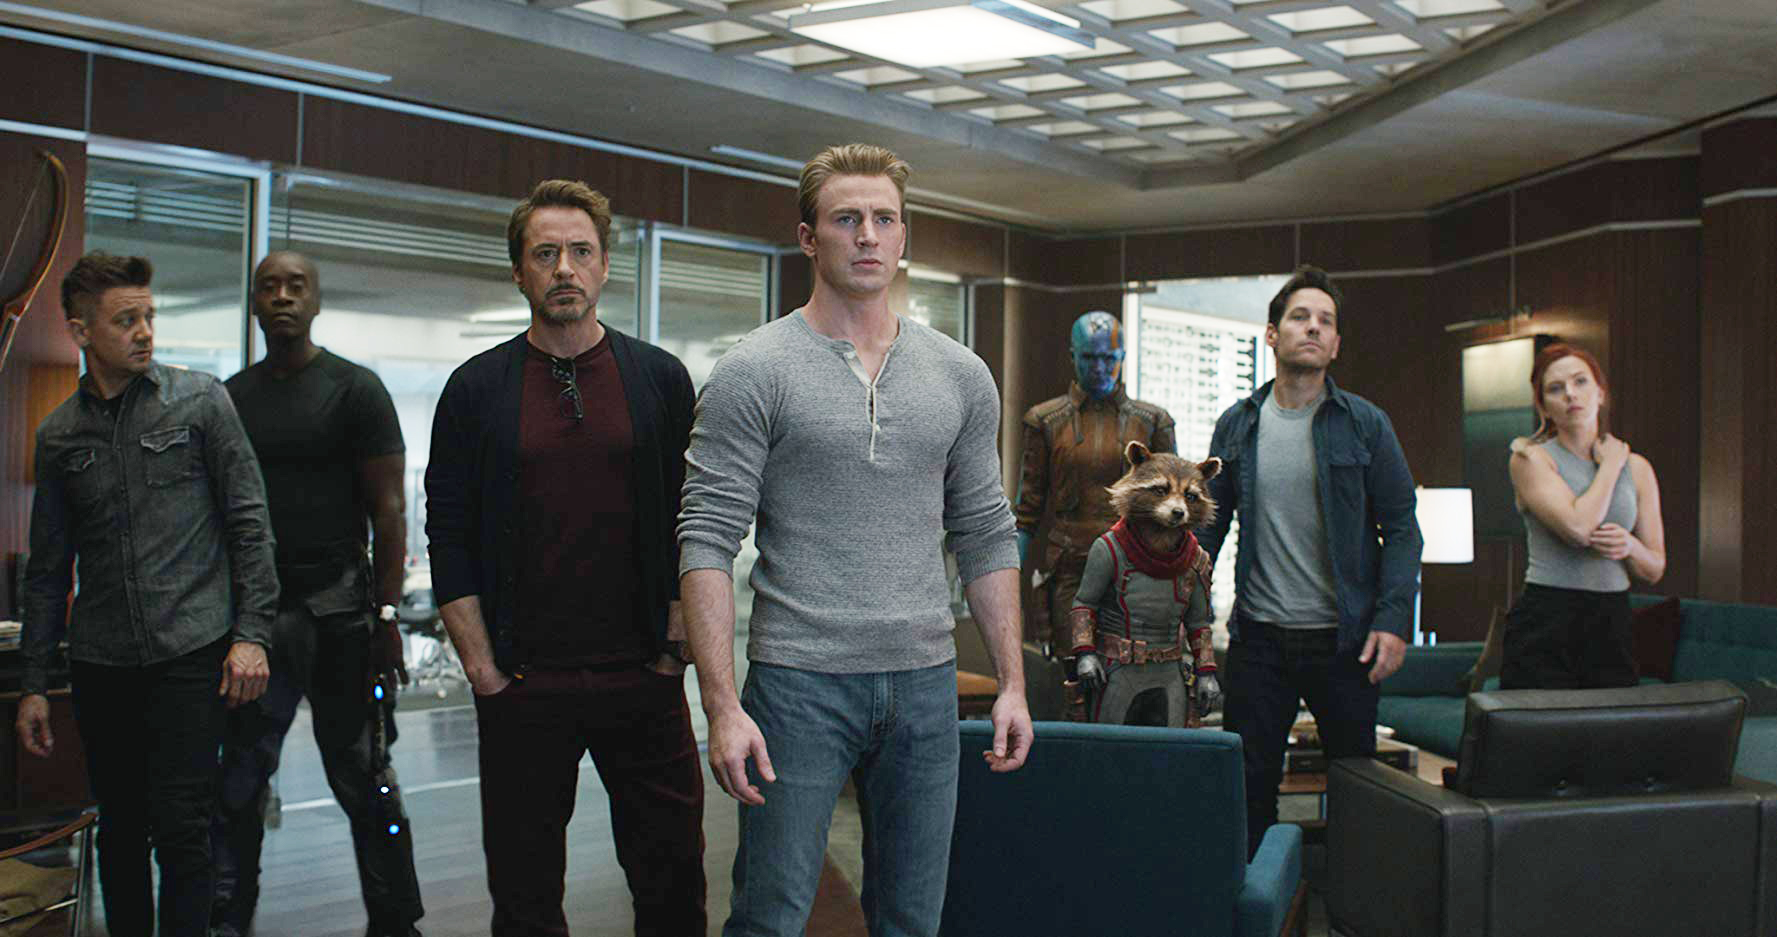 Movie Scene Endgame Or Is It Either Way A For Avengers